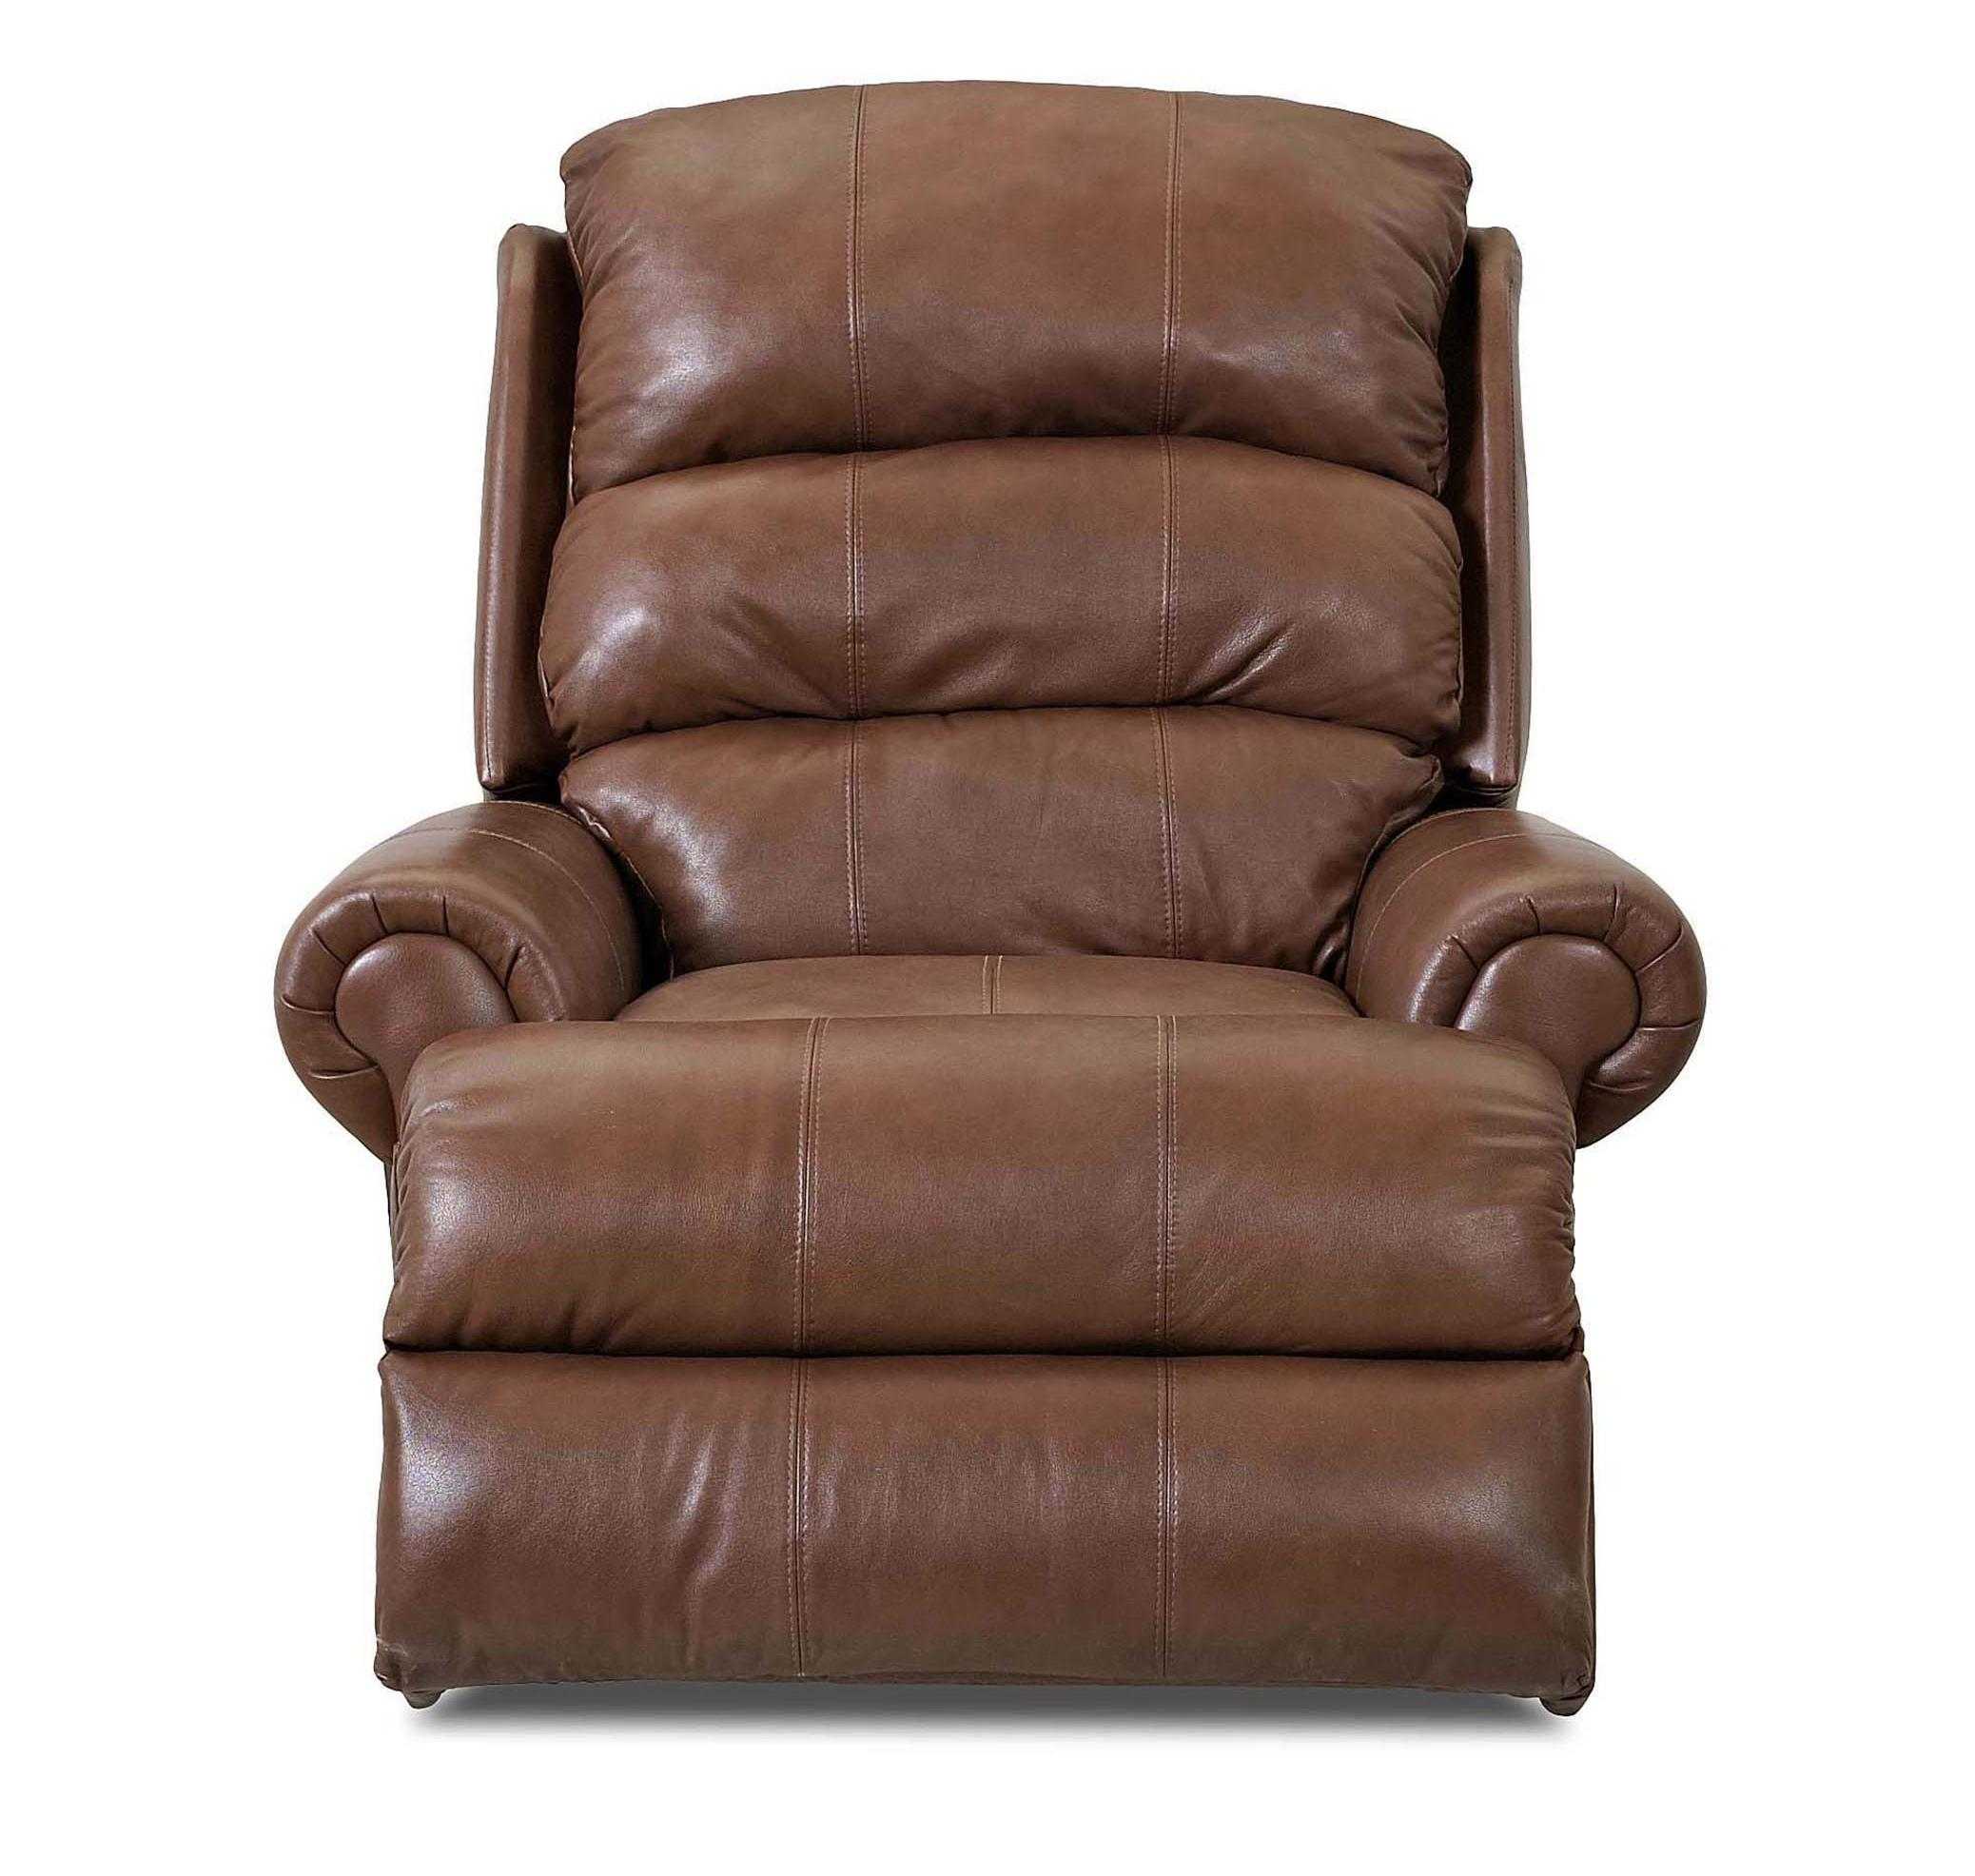 Klaussner Norman Transitional Swivel Rocking Reclining Chair - Item Number: LV91003H SRRC